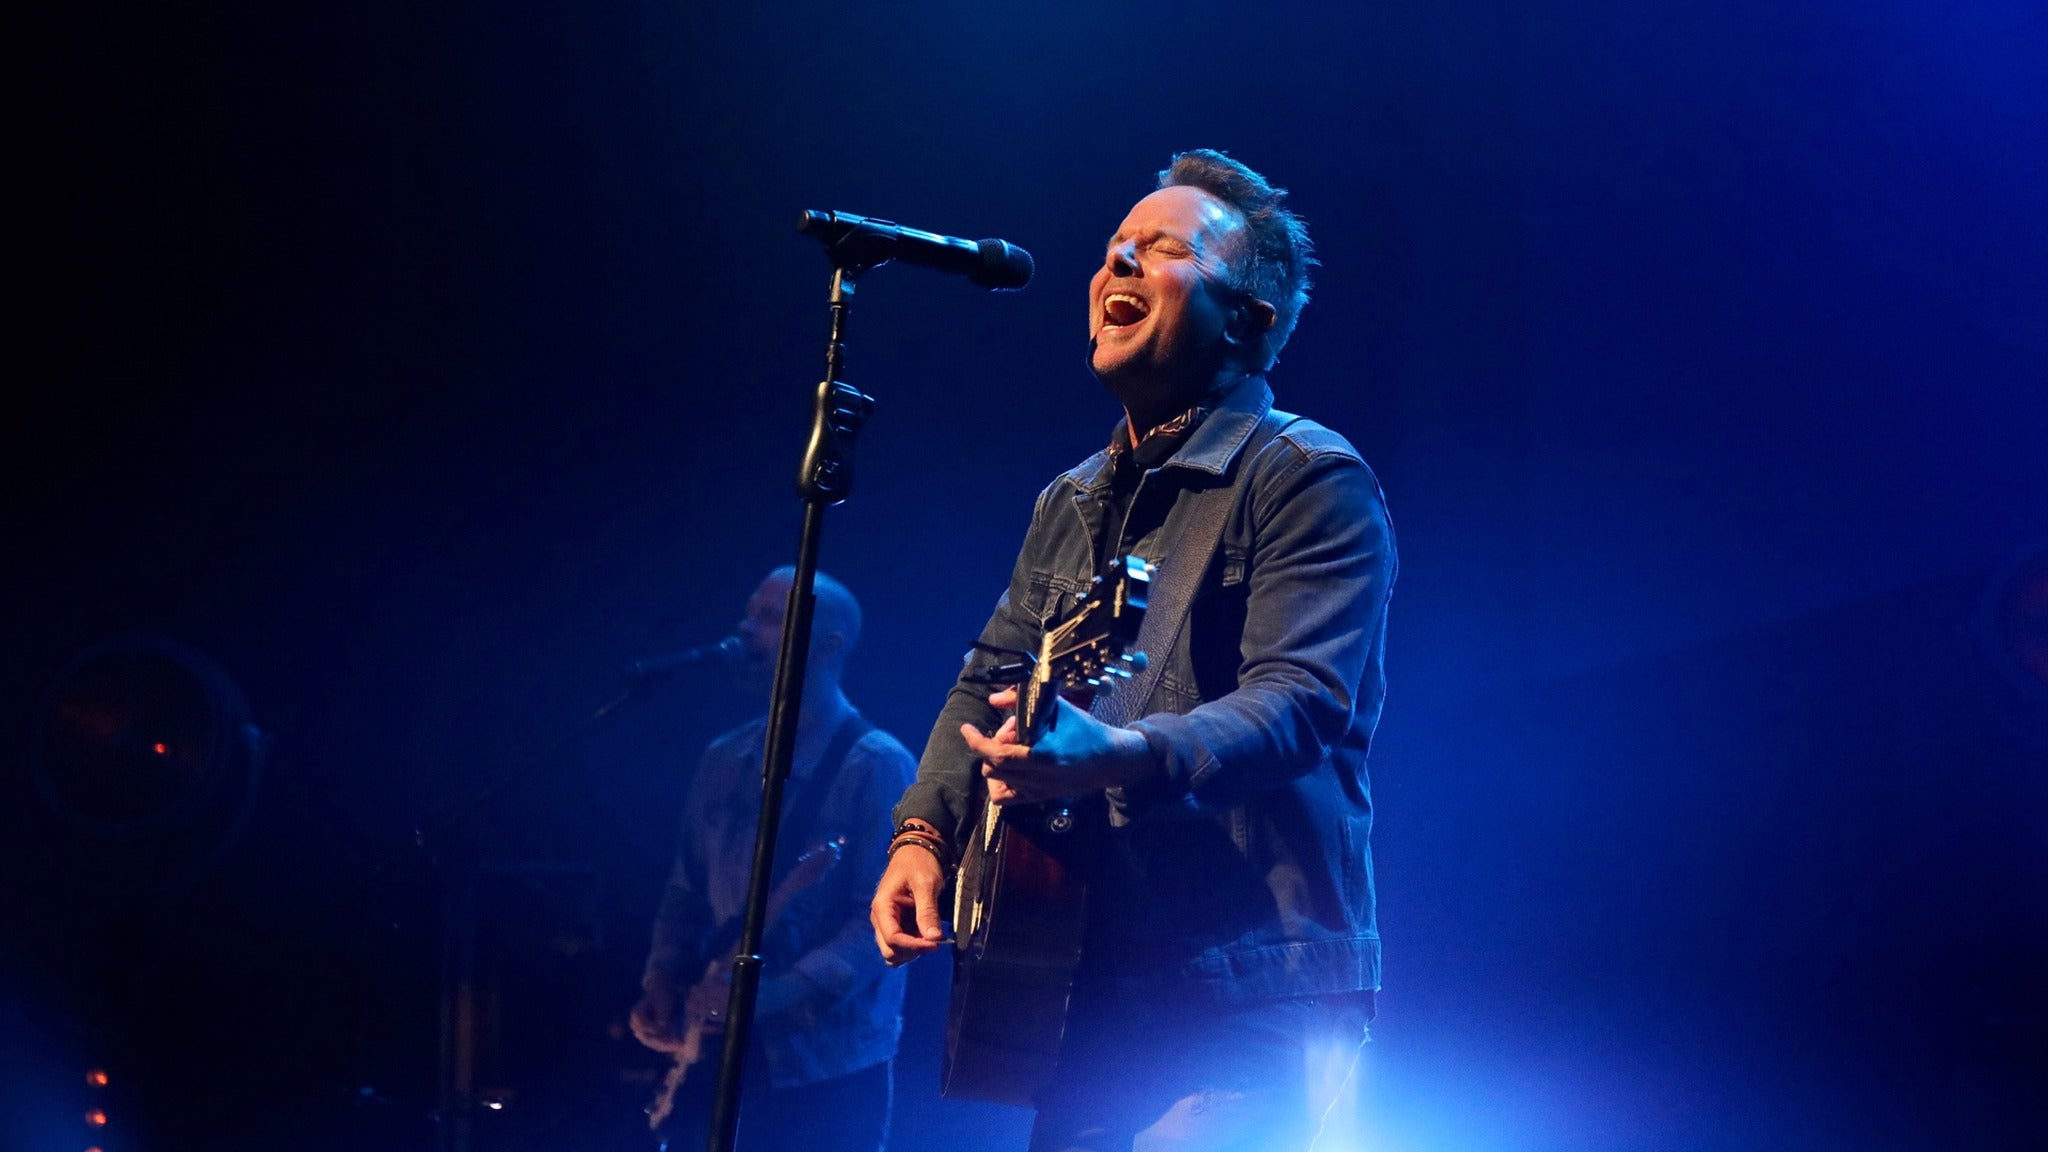 Chris Tomlin at Tivoli Theatre - Chattanooga